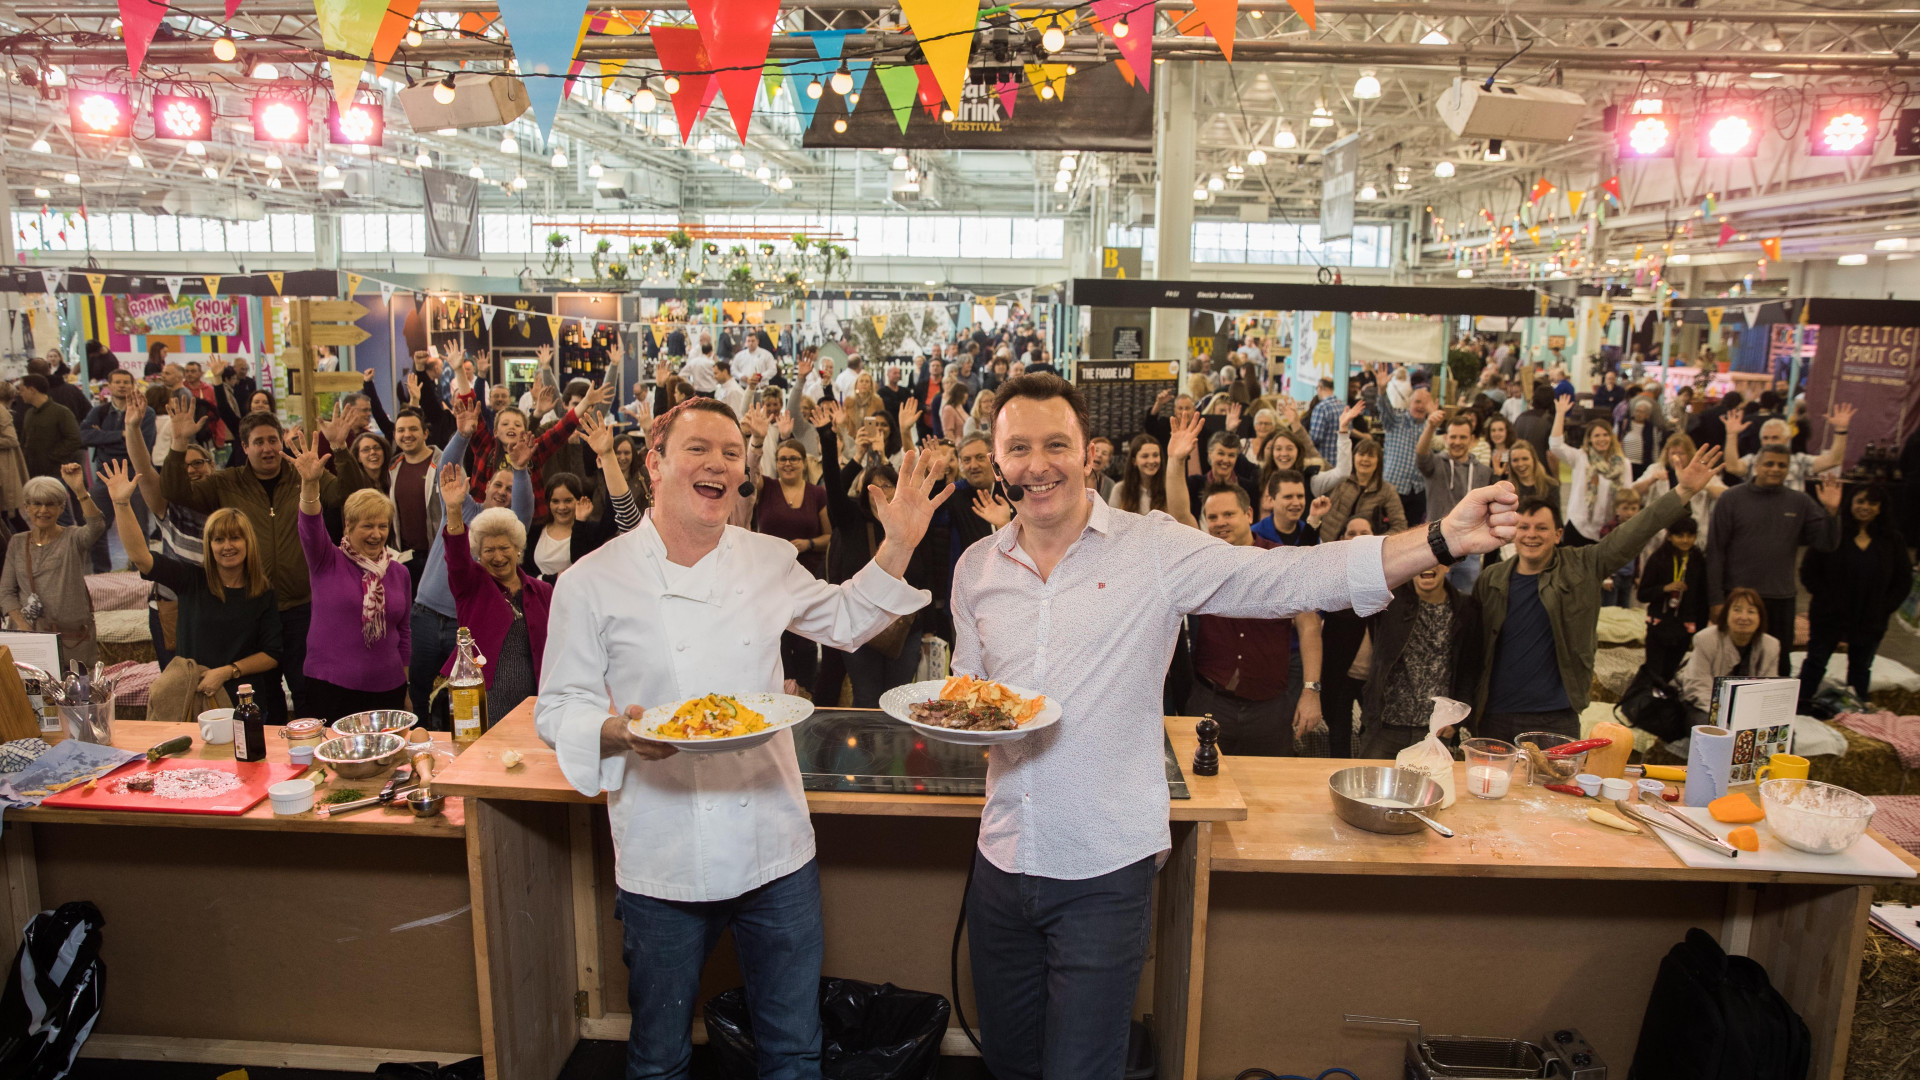 A cooking masterclass at Eat & Drink Festival